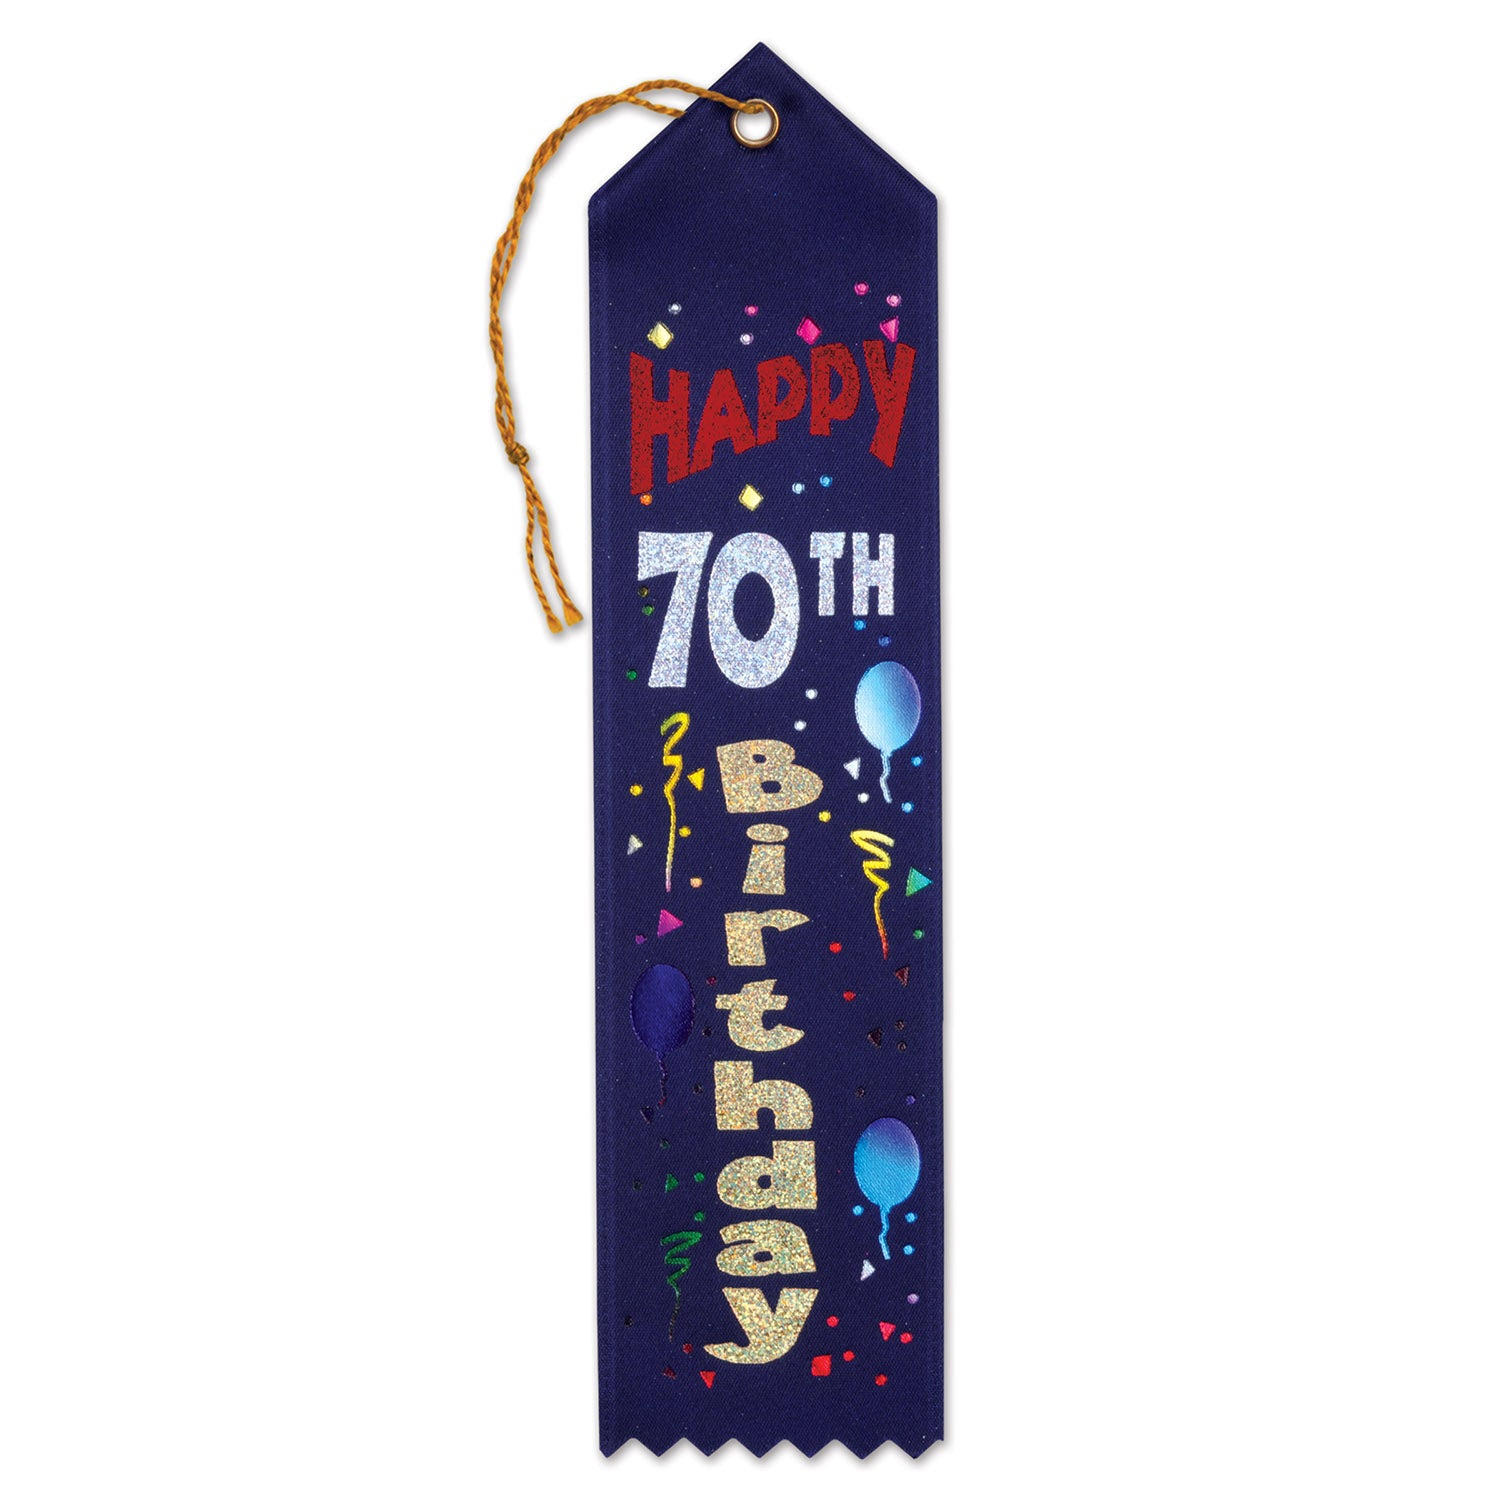 Happy 70th Birthday Award Ribbon by Beistle - 70th Birthday Party Decorations